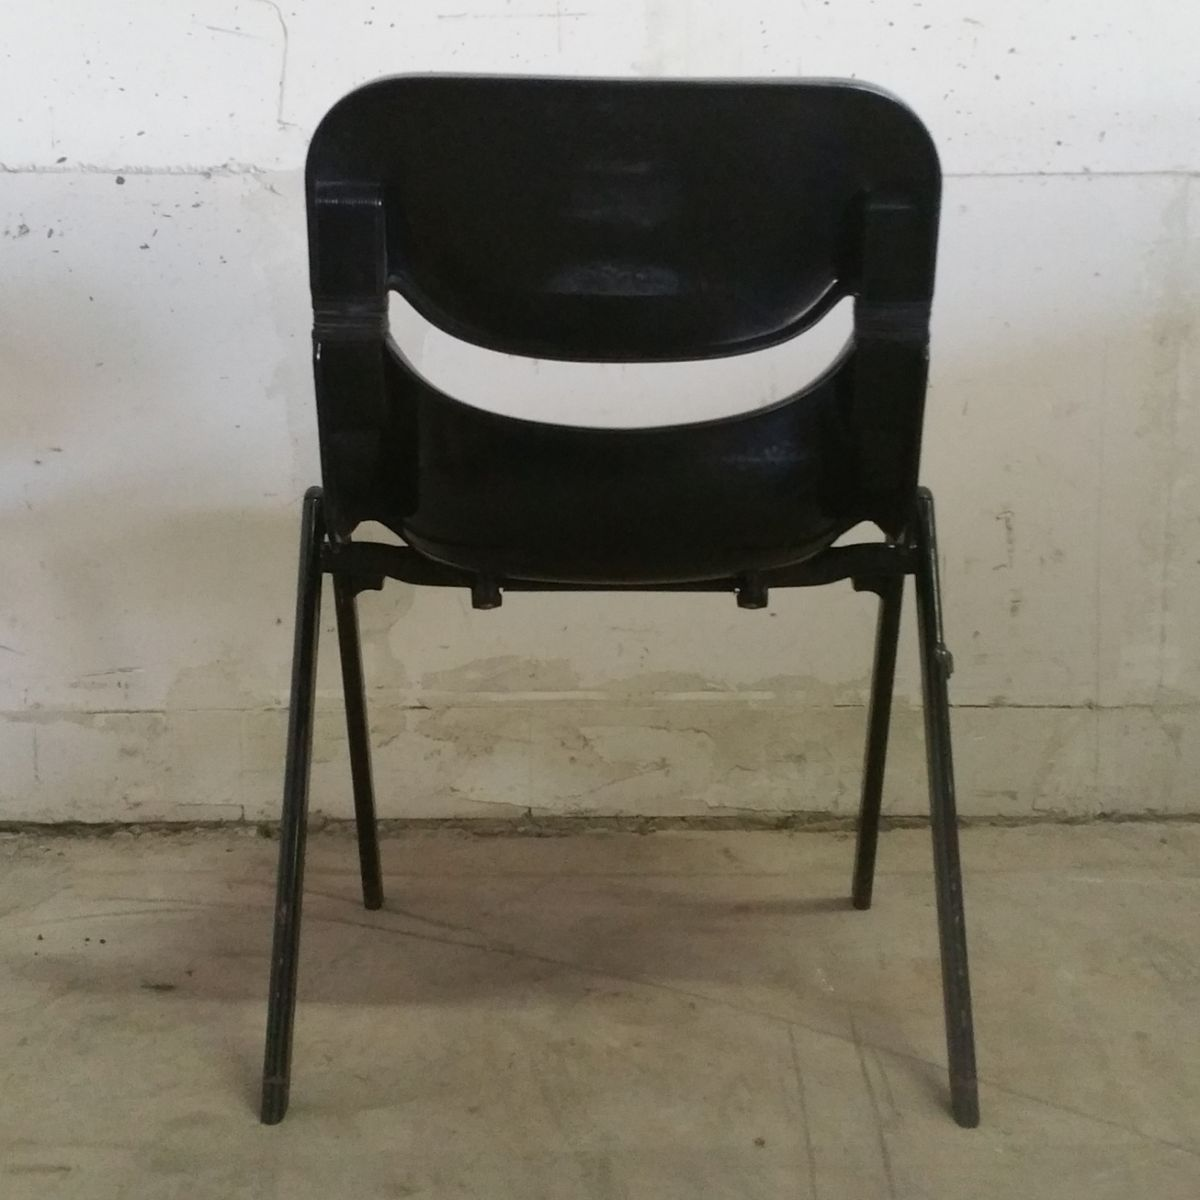 Z Chair For Sale Dorsal Chair By Giancarlo Piretti For Openark 1981 For